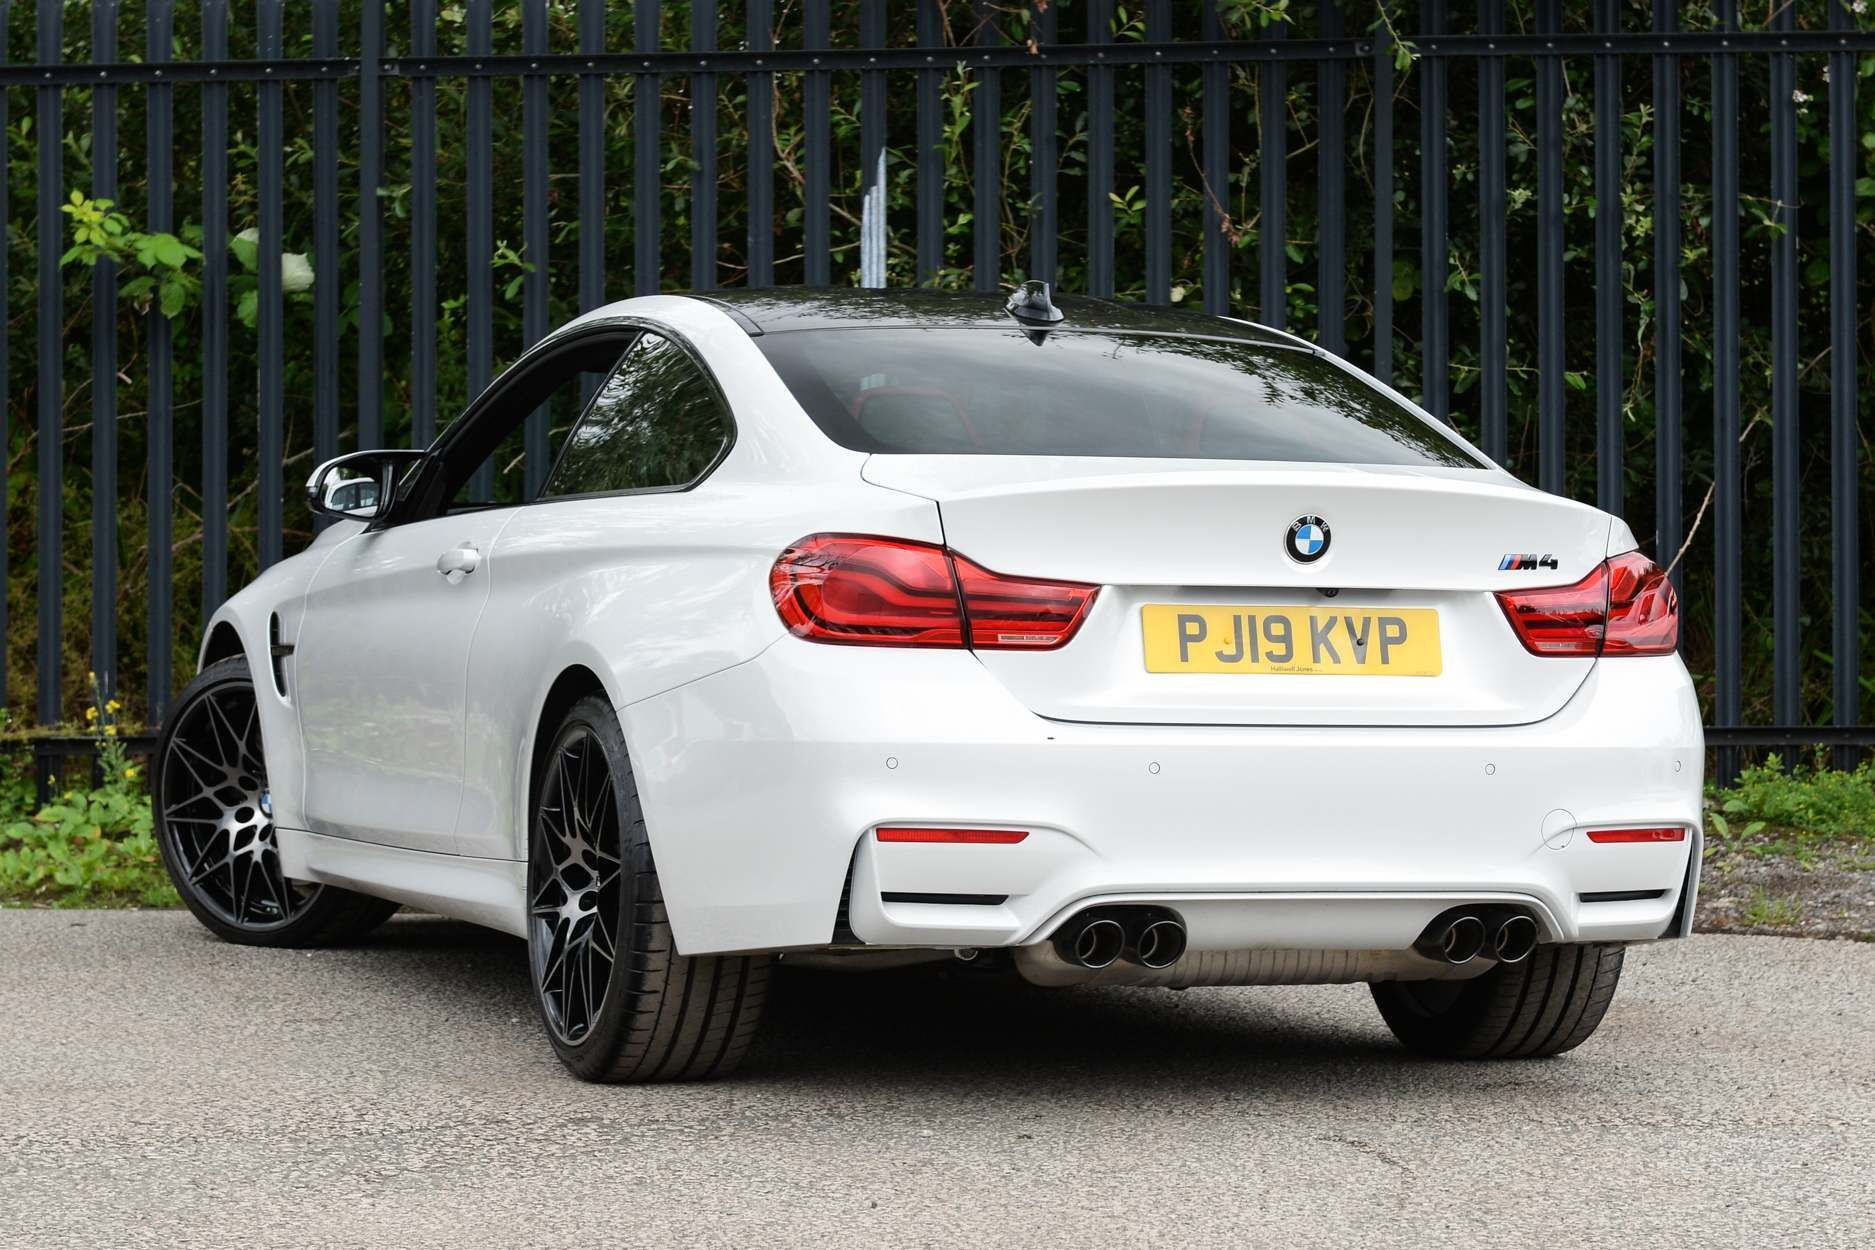 Image 2 - BMW Coupe Competition Package (PJ19KVP)